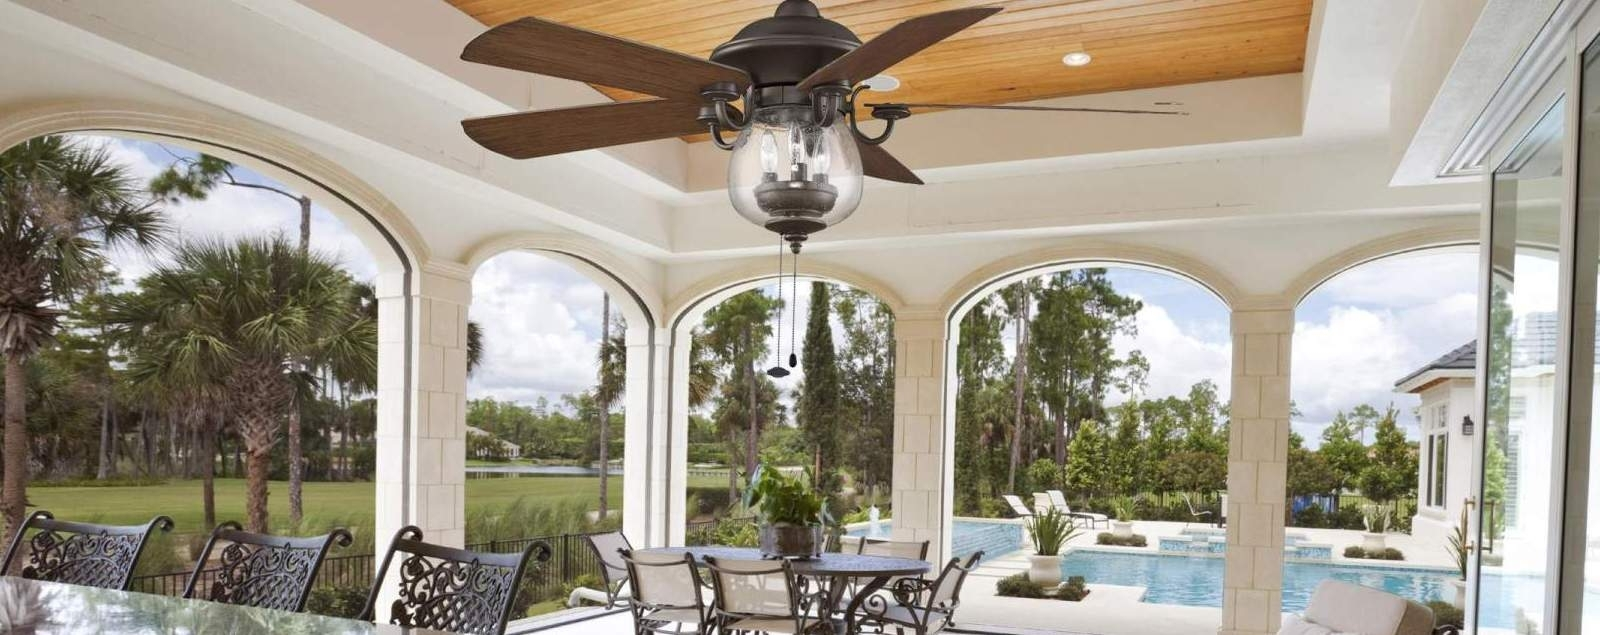 2019 Outdoor Ceiling Fans For Screened Porches Intended For Outdoor Ceiling Fans – Shop Wet, Dry, And Damp Rated Outdoor Fans (Gallery 2 of 20)